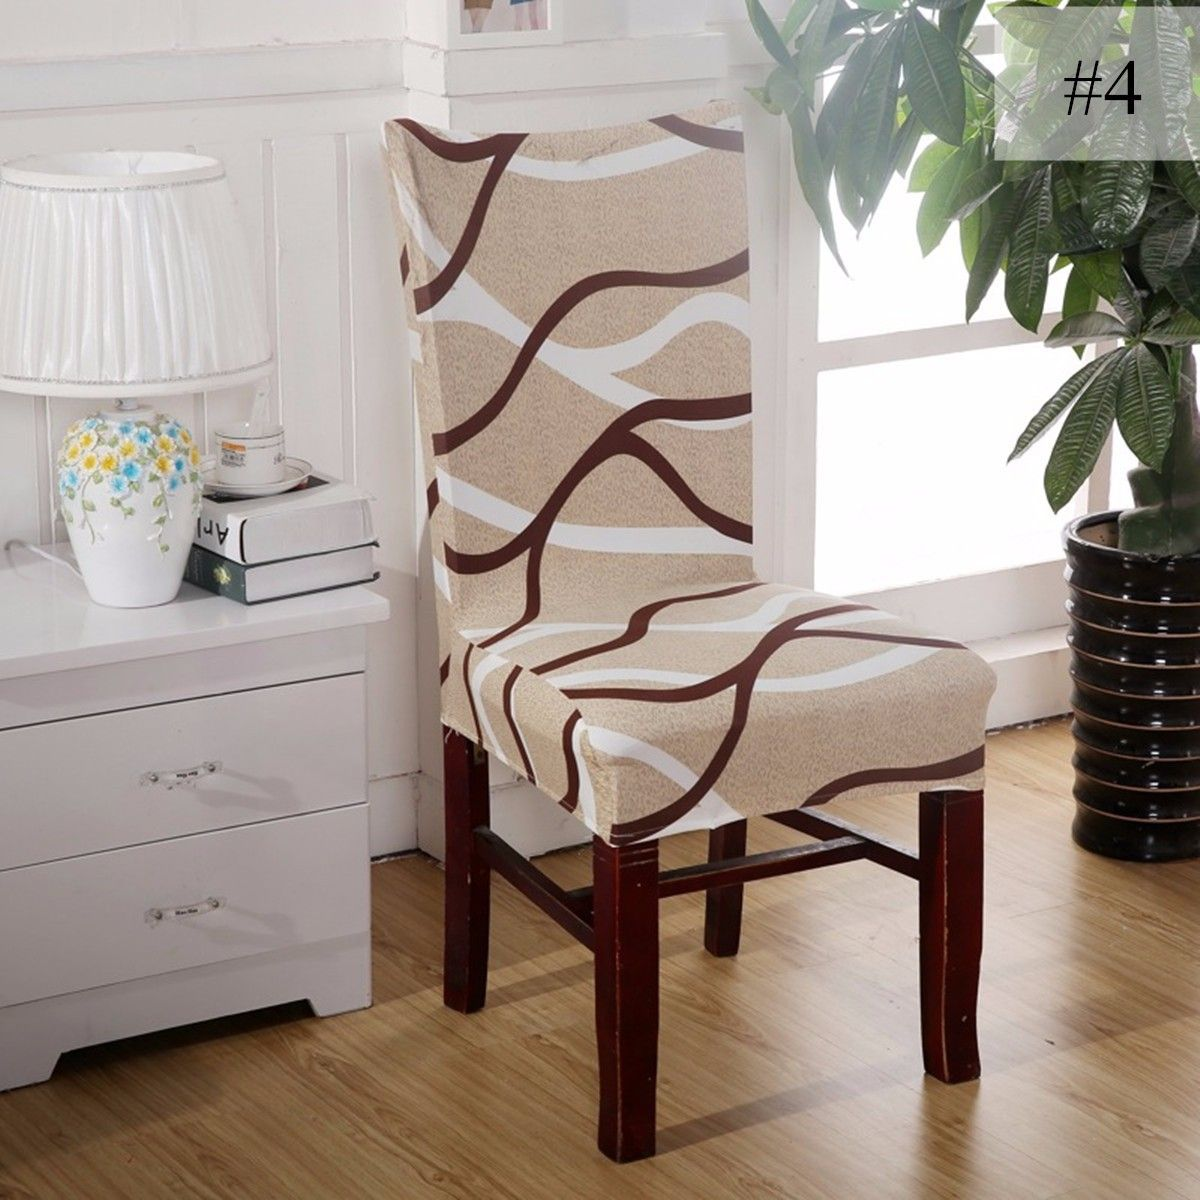 173 Reference Of Chair Covers For Dining Room Chairs Uk Dining Room Seat Covers Slipcovers For Chairs Banquet Chair Covers